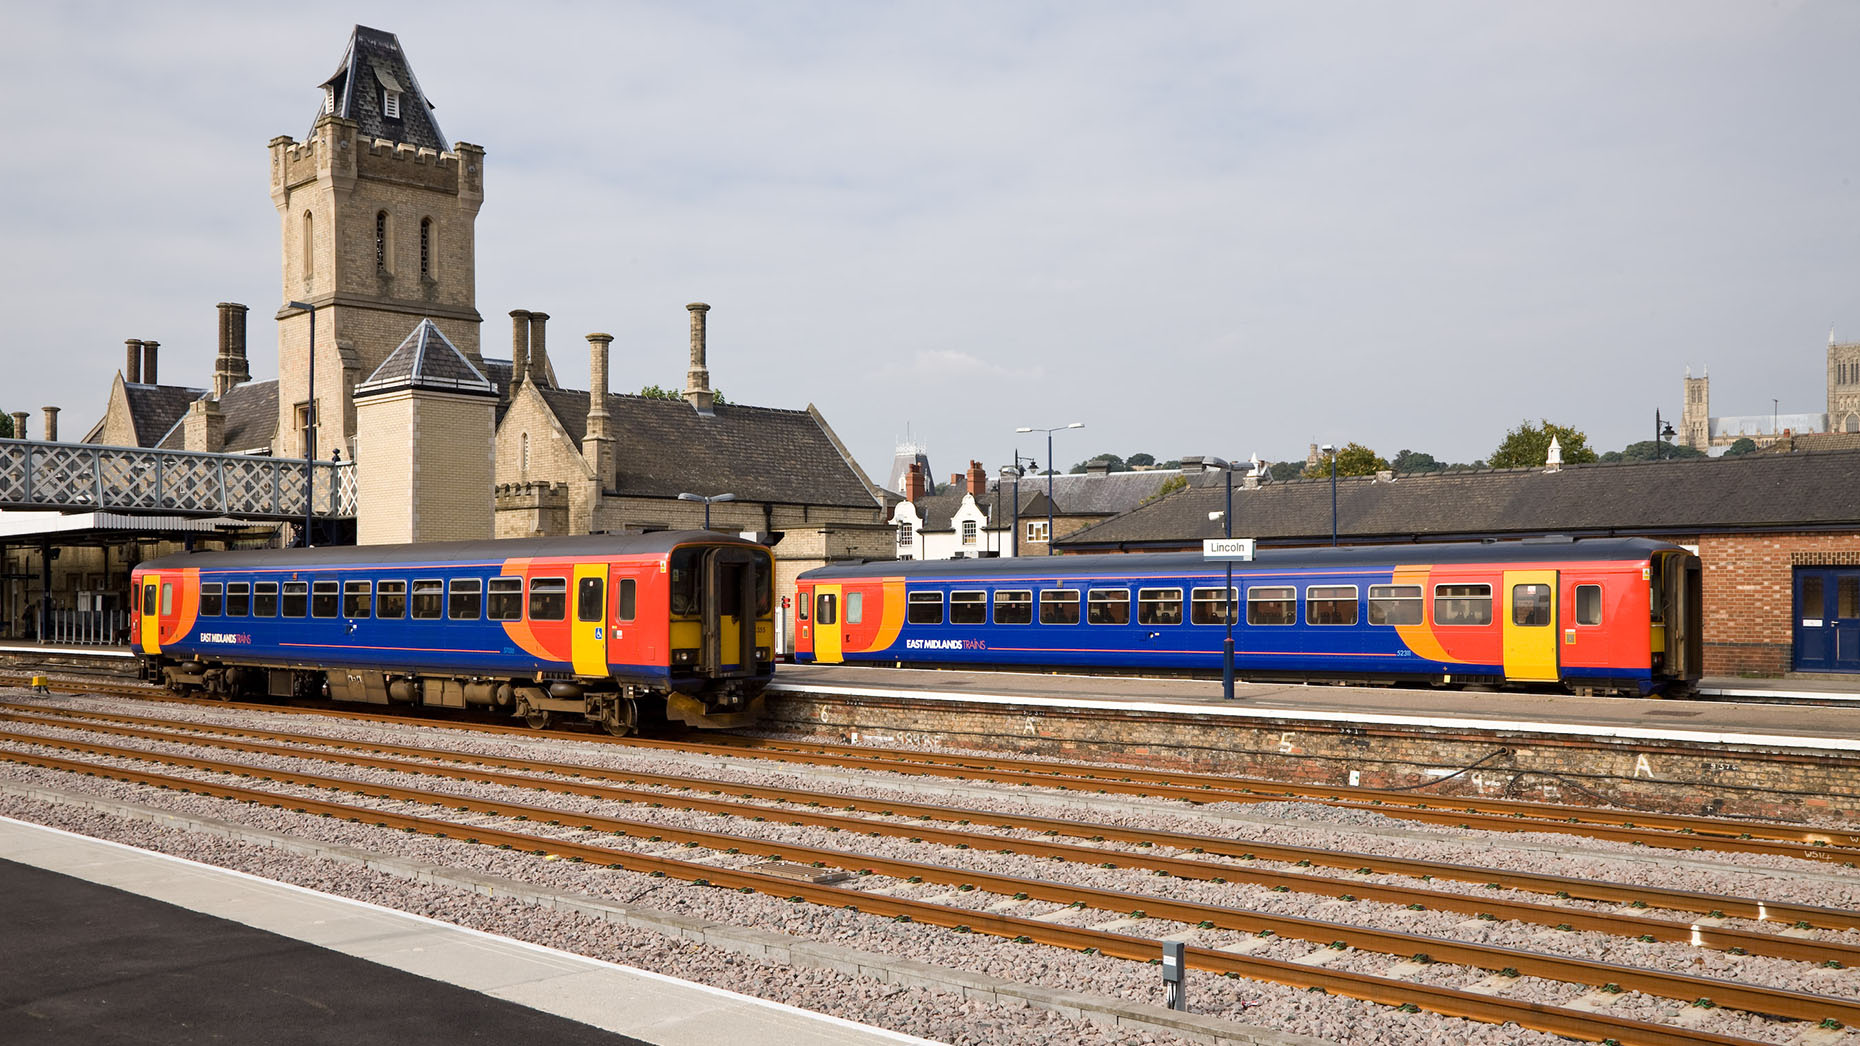 East midlands trains fotopic 92